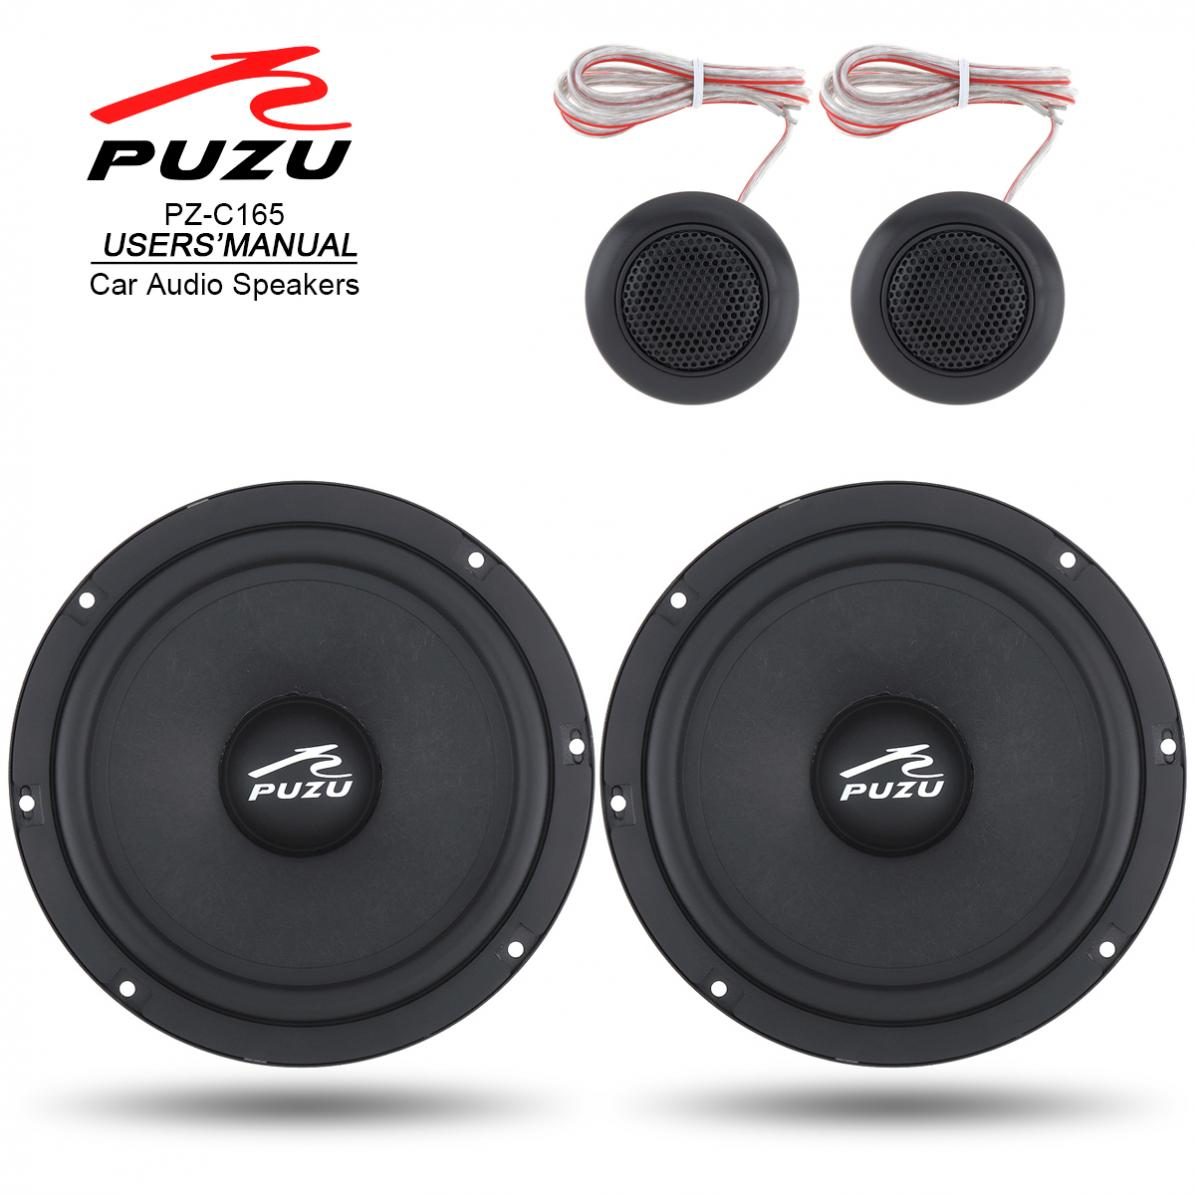 2Pcs 6.5 Inch Car audio speakers 180W Car Coaxial Full Range Frequency Stereo Speaker with Tweeter and Frequency Divider 120w dome tweeter component speakers for car stereo audio system pair